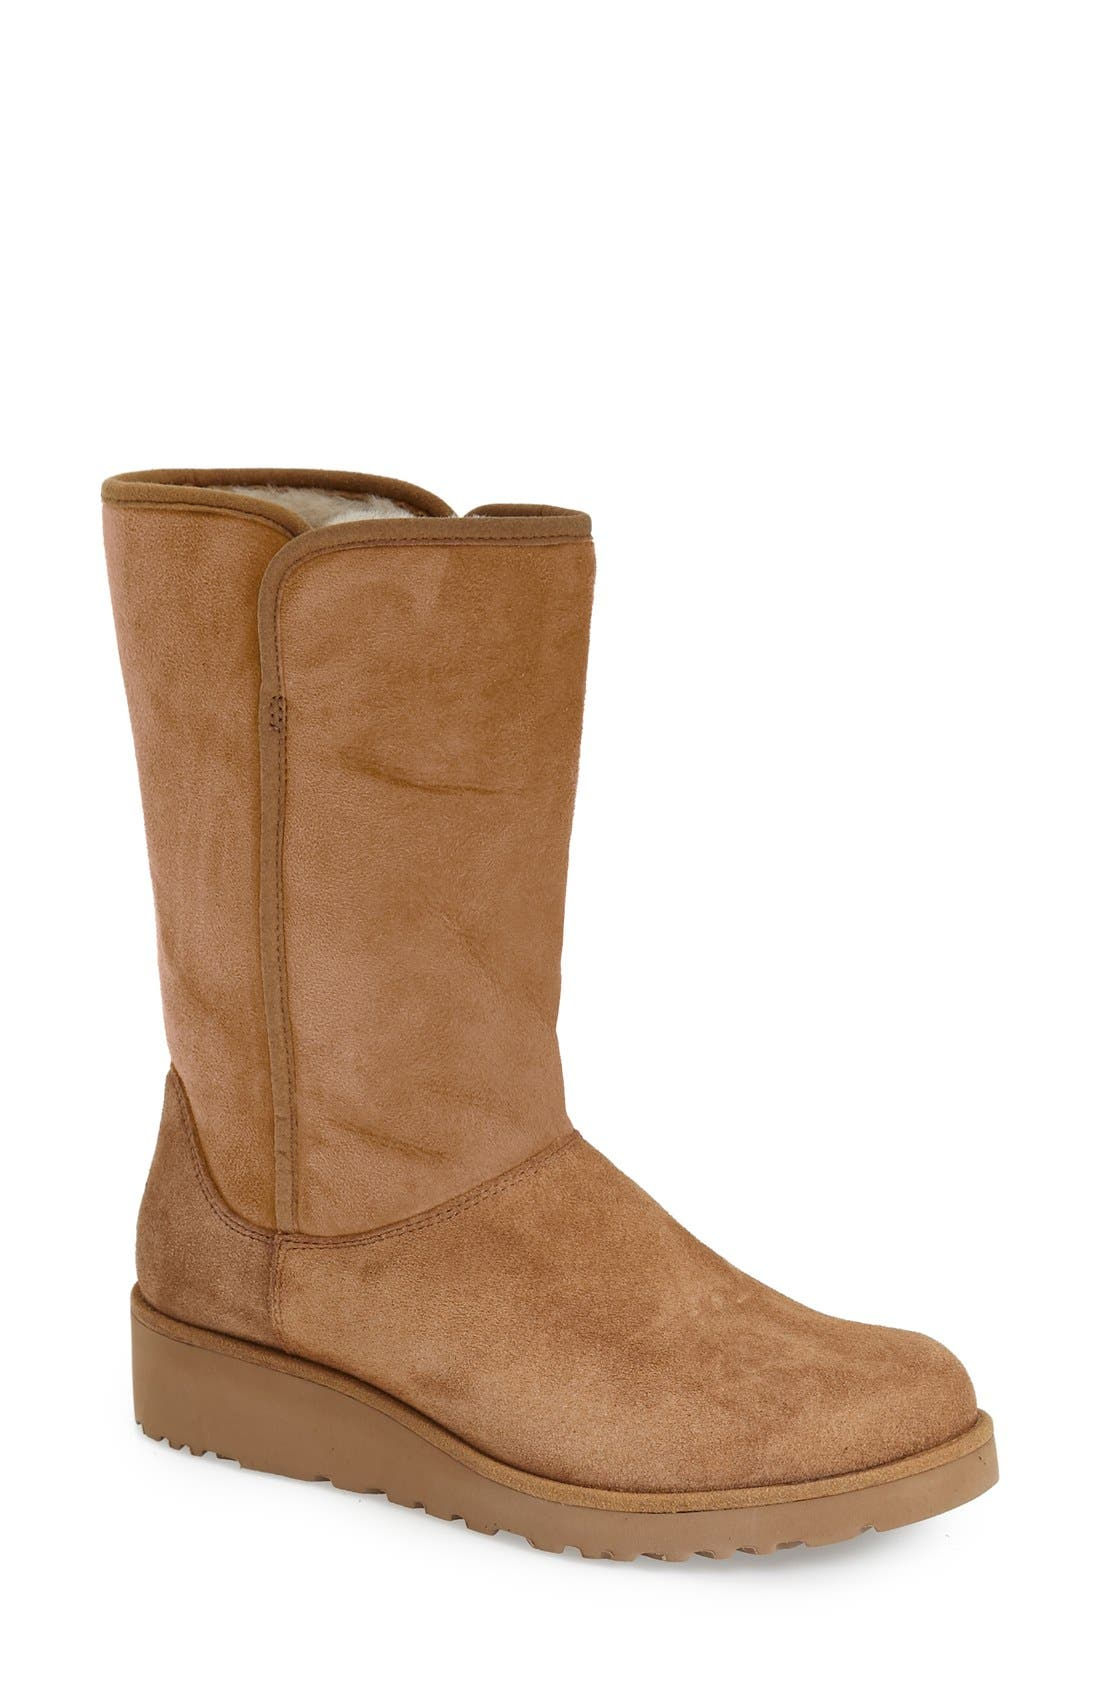 Amie - Classic Slim<sup>™</sup> Water Resistant Short Boot,                         Main,                         color, Chestnut Suede